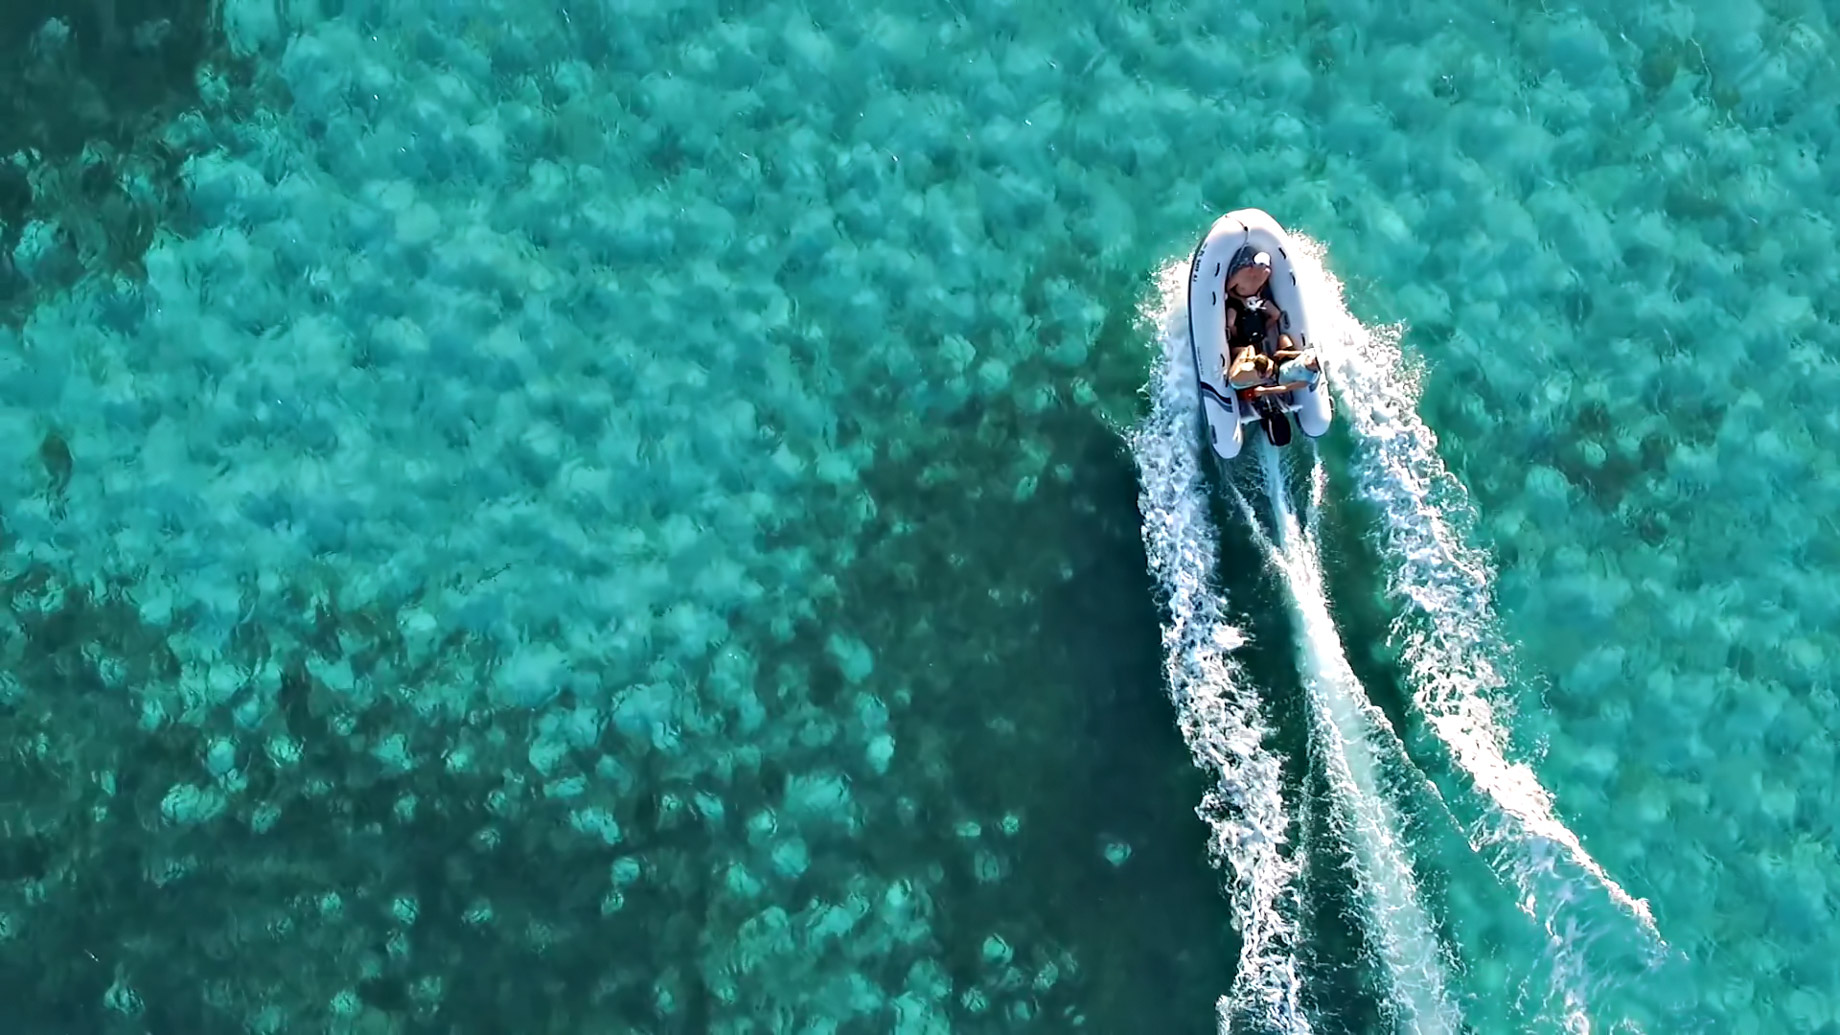 Boating on Crystal Clear Tropical Waters in the Bahamas